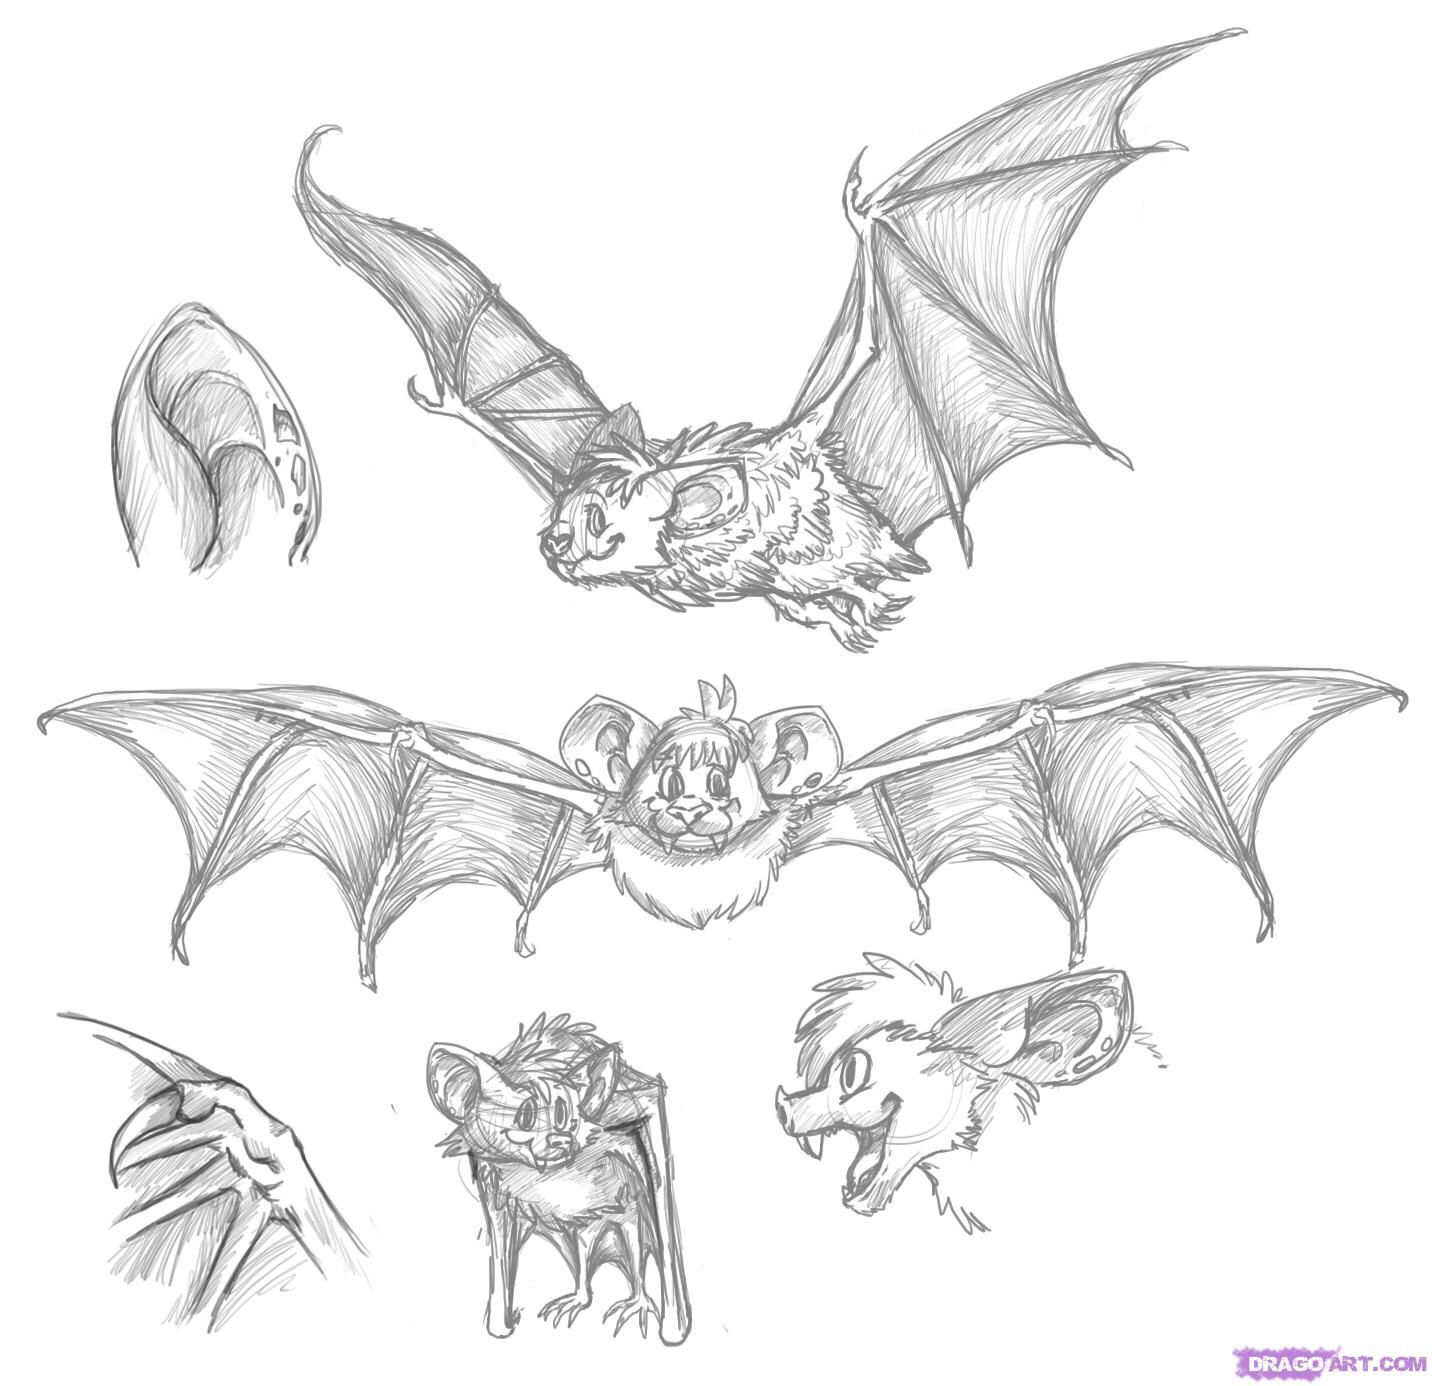 bat wings drawing bat wings drawing bat wings by cybololz drawdragons bat wings drawing